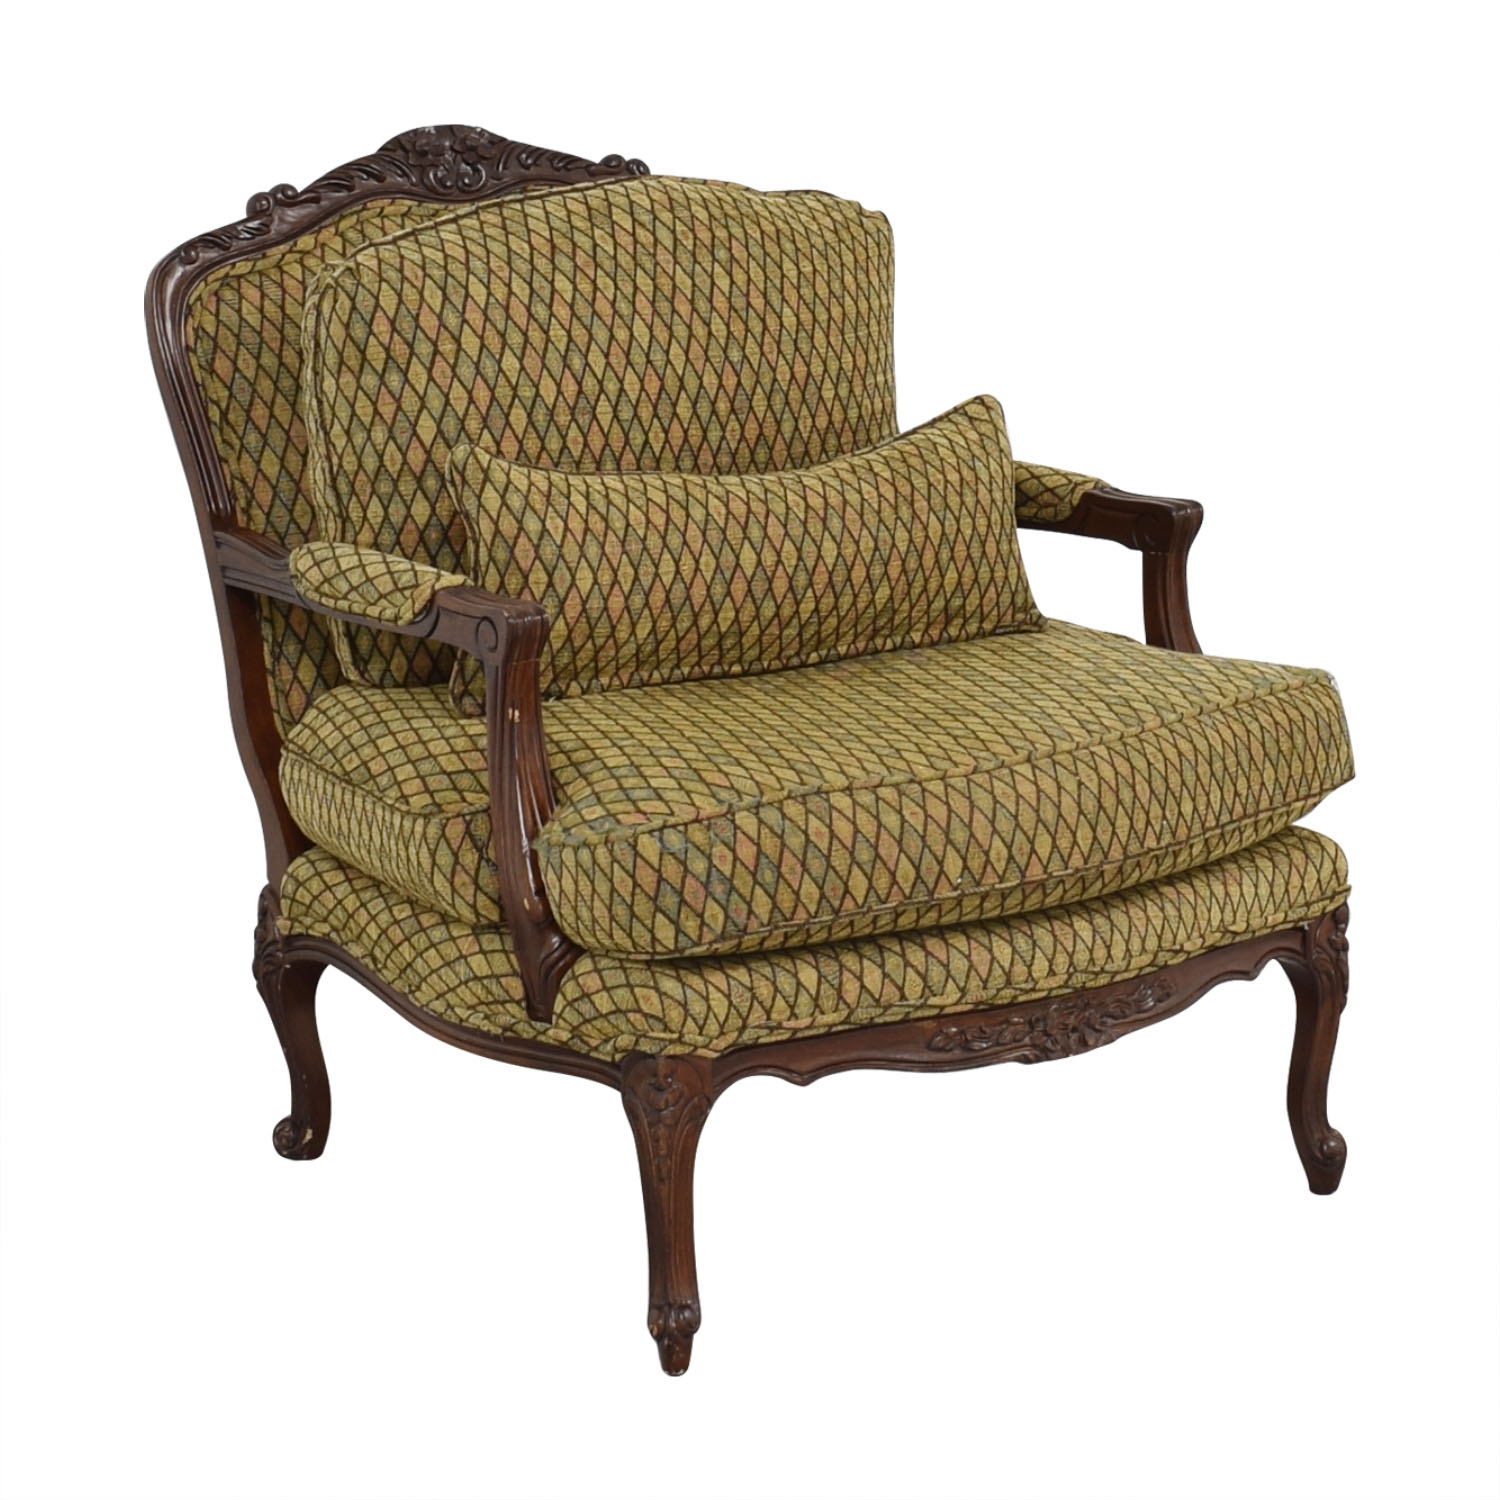 buy Vintage Henredon Chair with Ottoman Henredon Furniture Accent Chairs